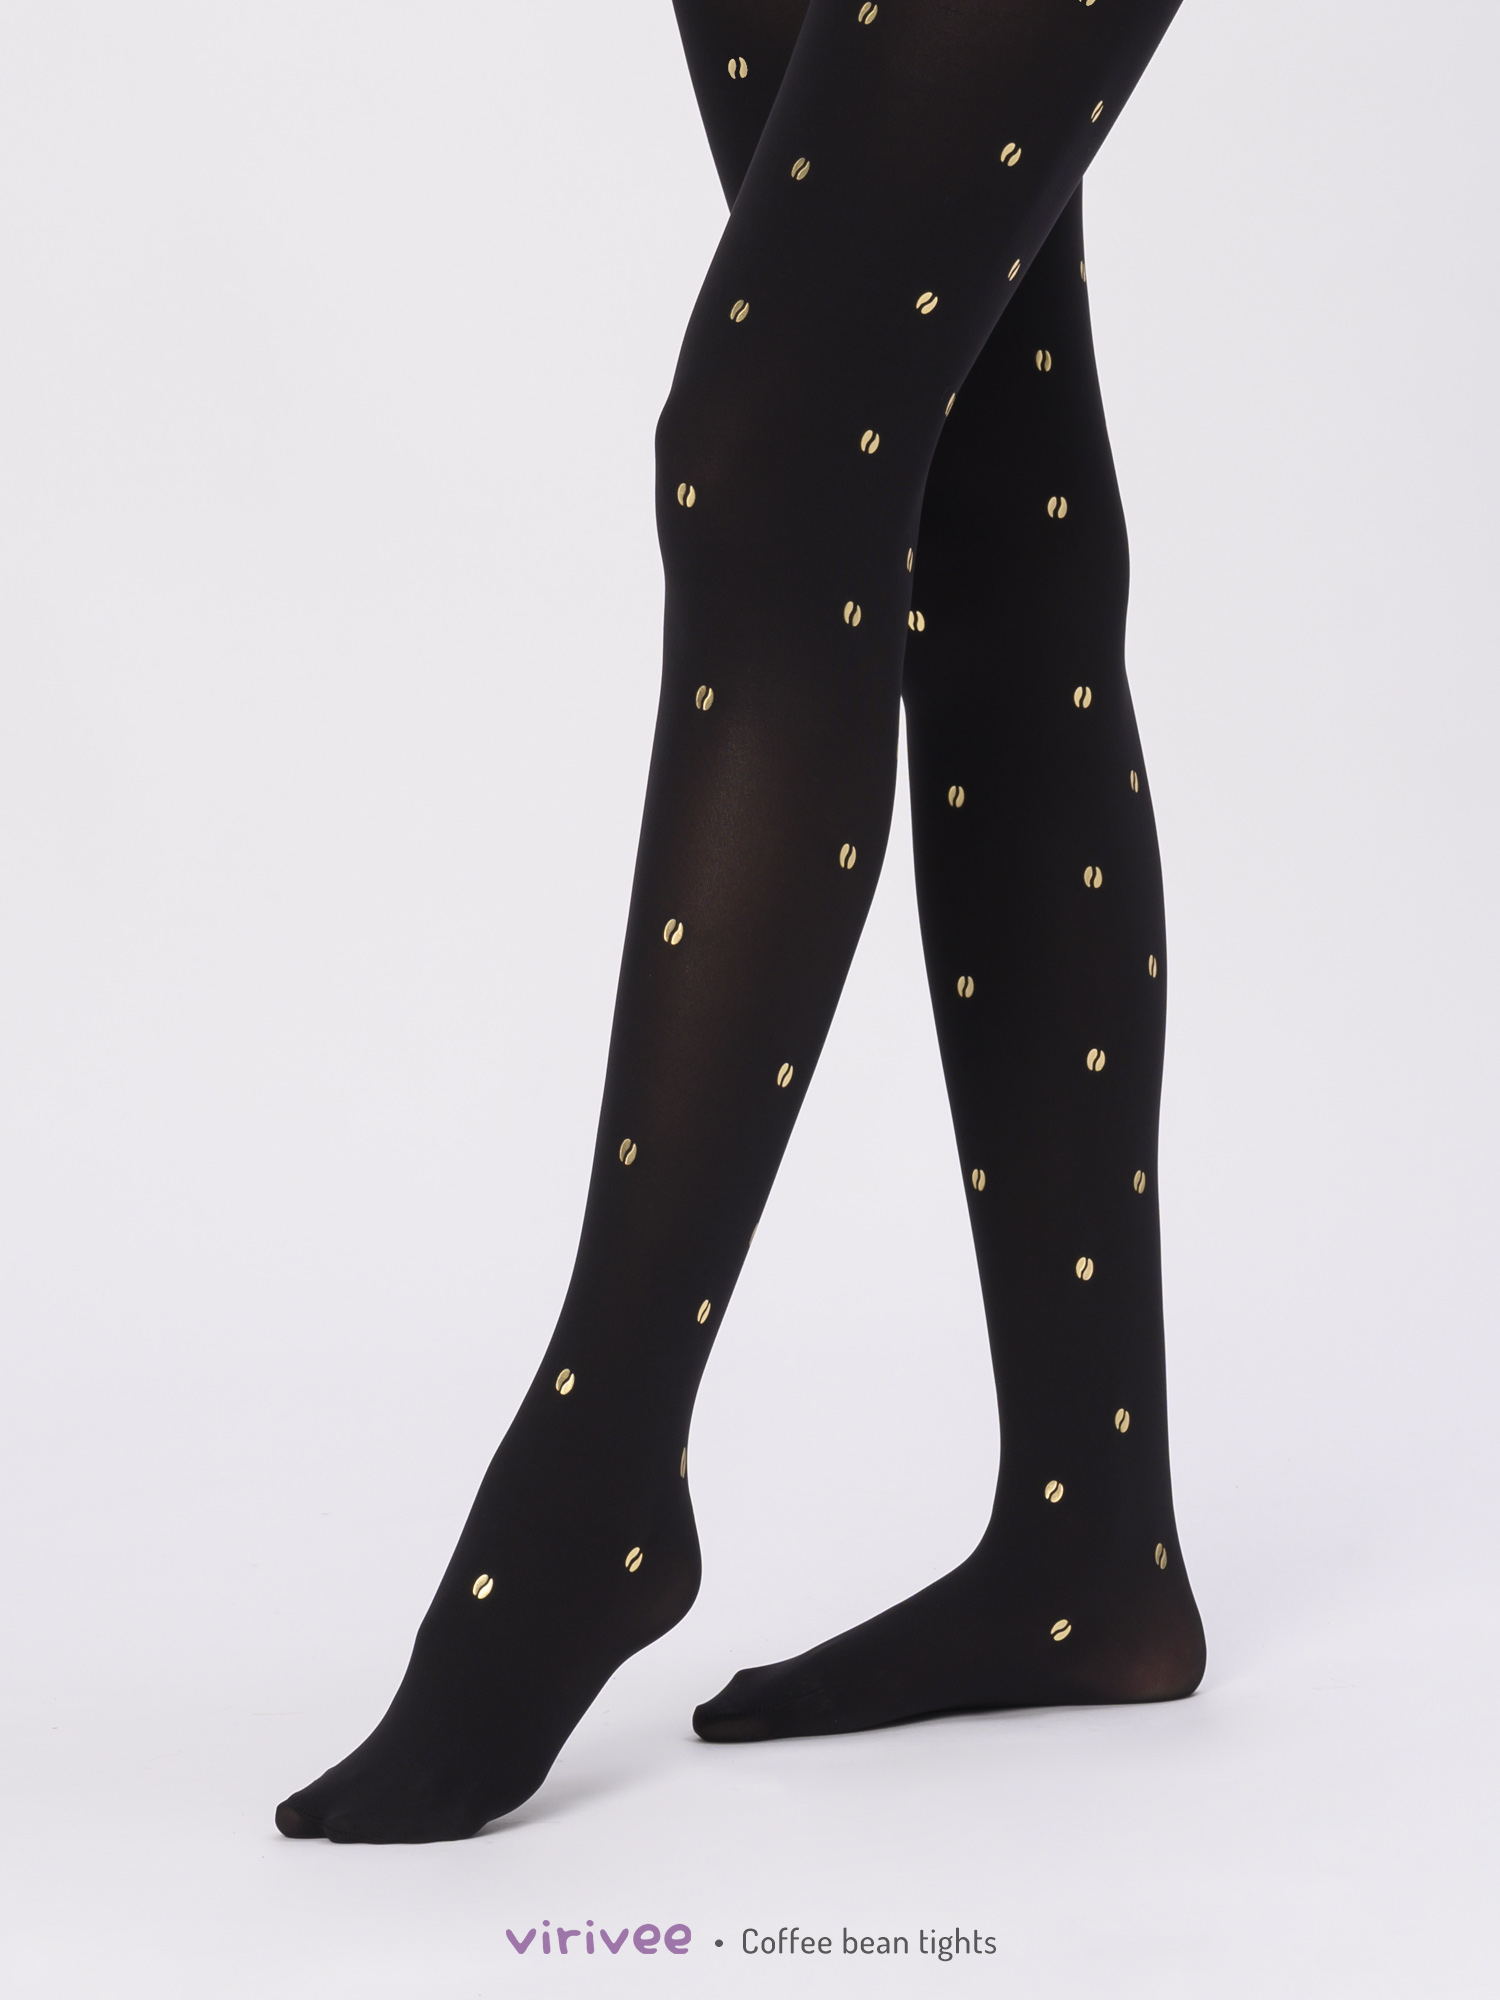 Coffee bean patterned tights, coffee lovers gift